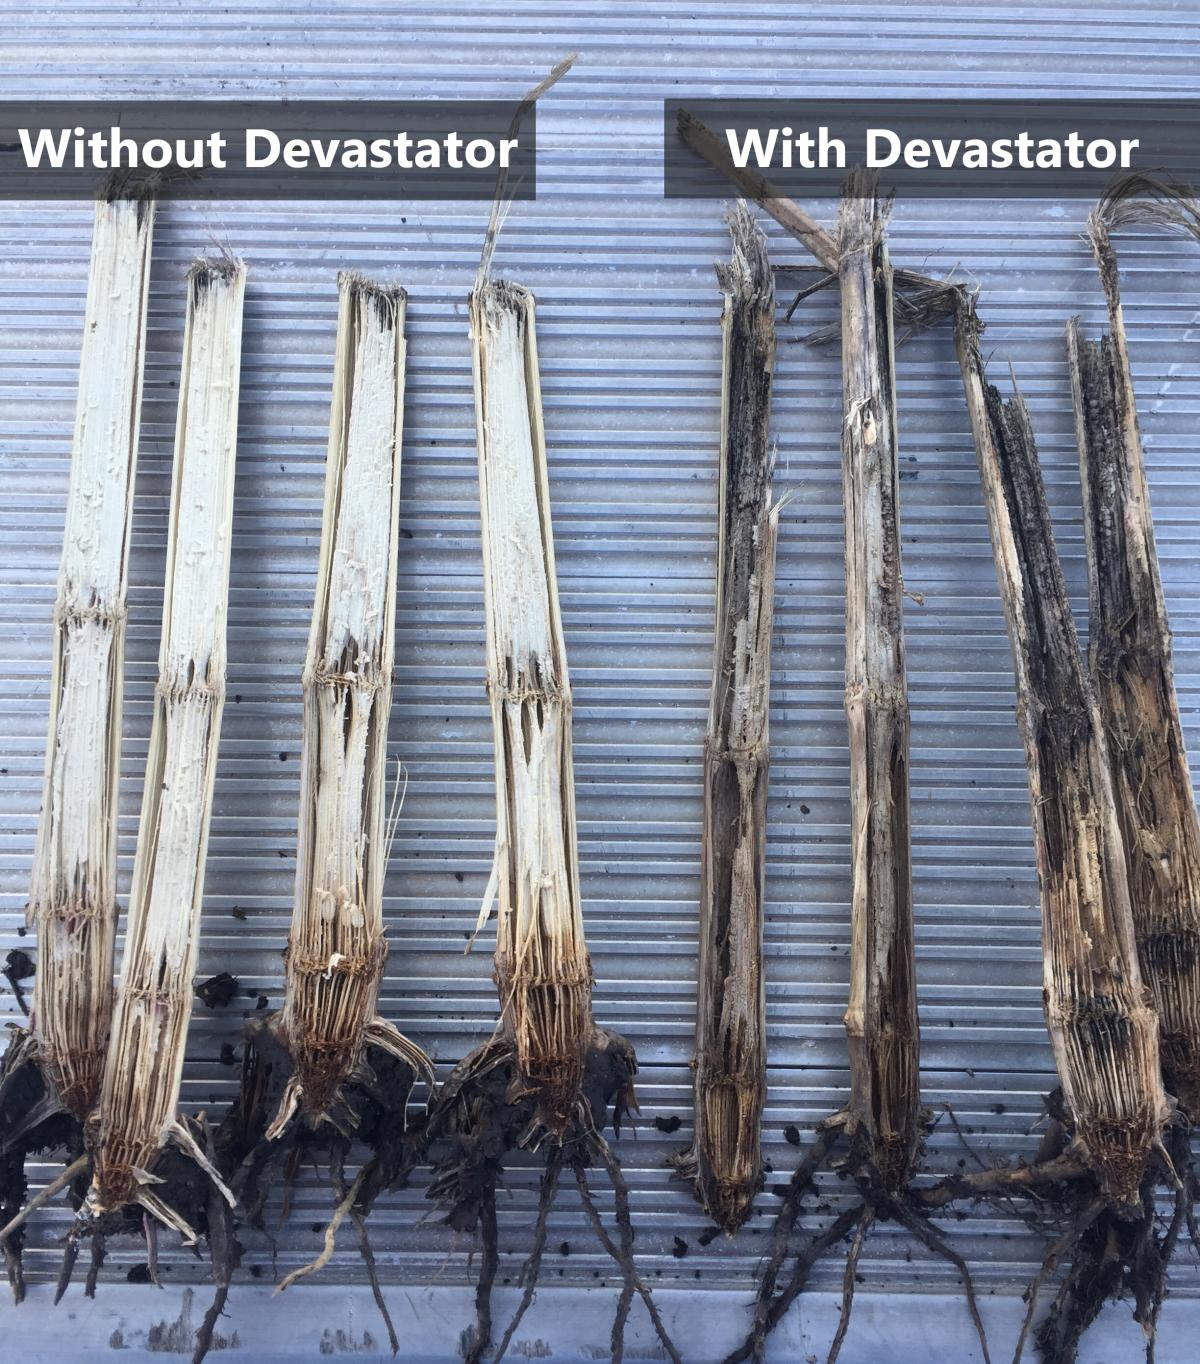 side by side showing what the devastator can do for corn stalks